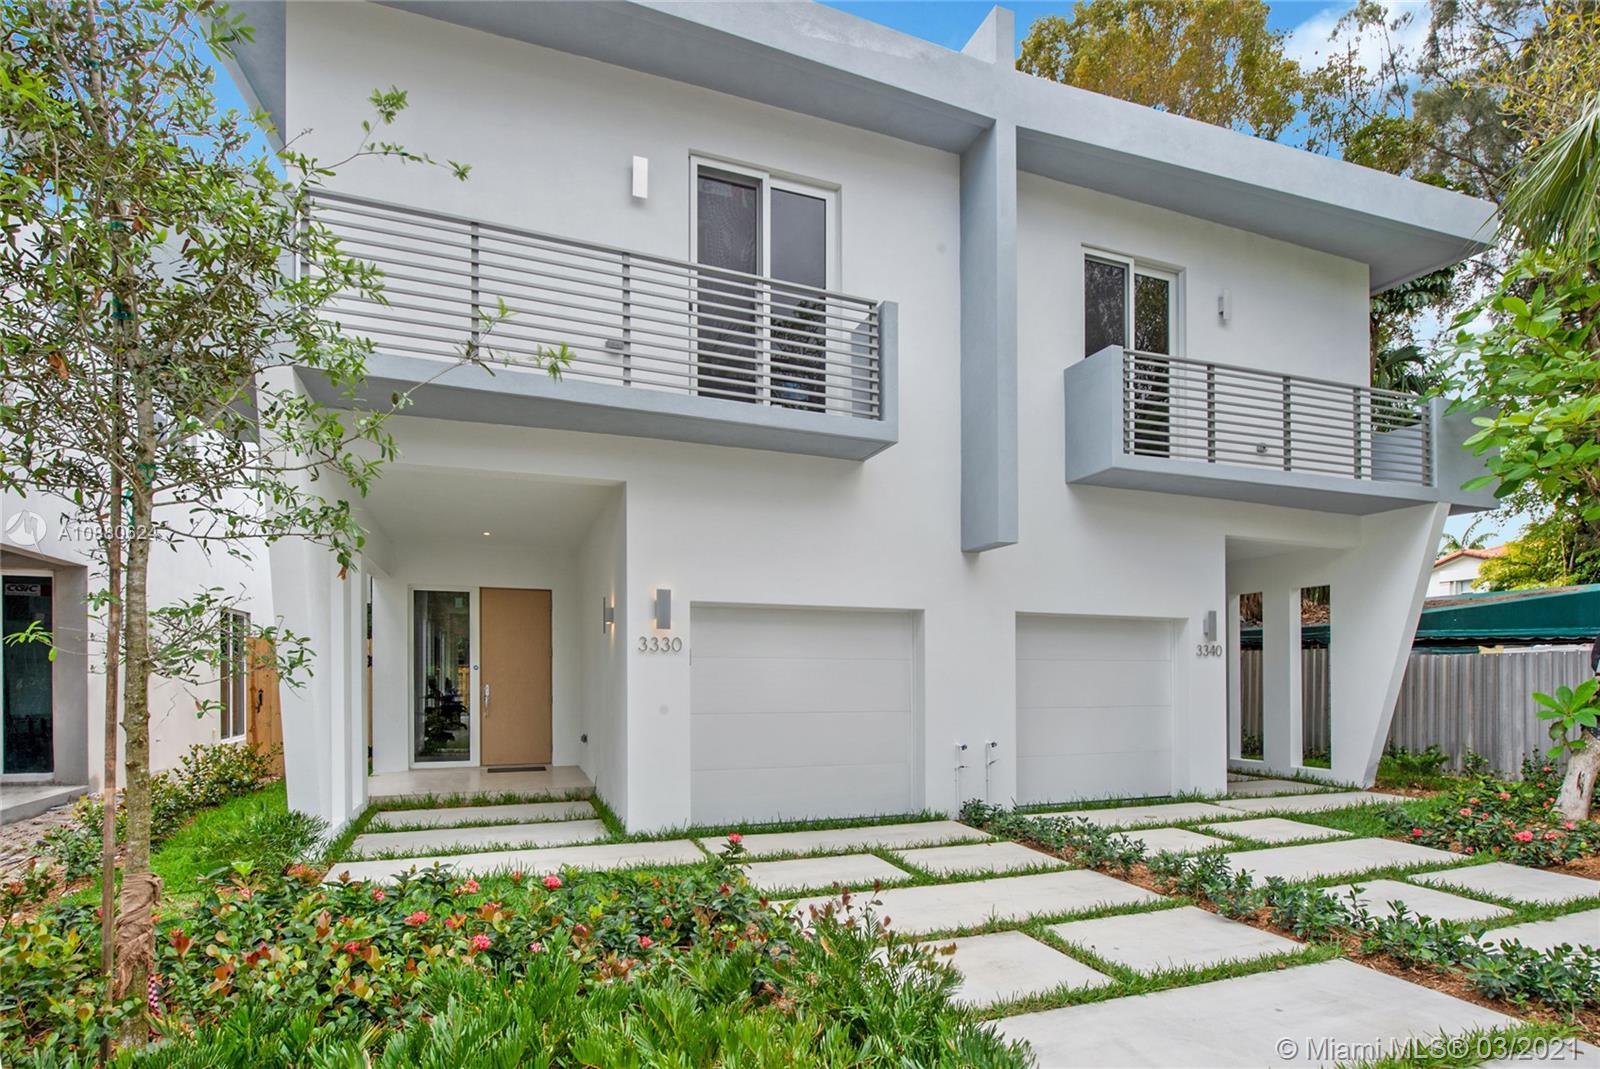 Nestled between Coconut Grove and Coral Gables, these 3 bed / 2.5bath homes are less than a mile away (6 min drive) from Miracle Mile, Downtown Coral Gables, The Shops at Merrick Park, and a plethora of parks in Coconut Grove, among plenty of other points of interest. Every space within its 2,050 sq.ft of living area is utilized to its fullest potential. Impact windows & high ceilings throughout. The Master Bedroom has 2 walk-in closets, and a private balcony. Top of the line finishes blend impeccably. Currently under construction, estimated completion in Fall 2020.